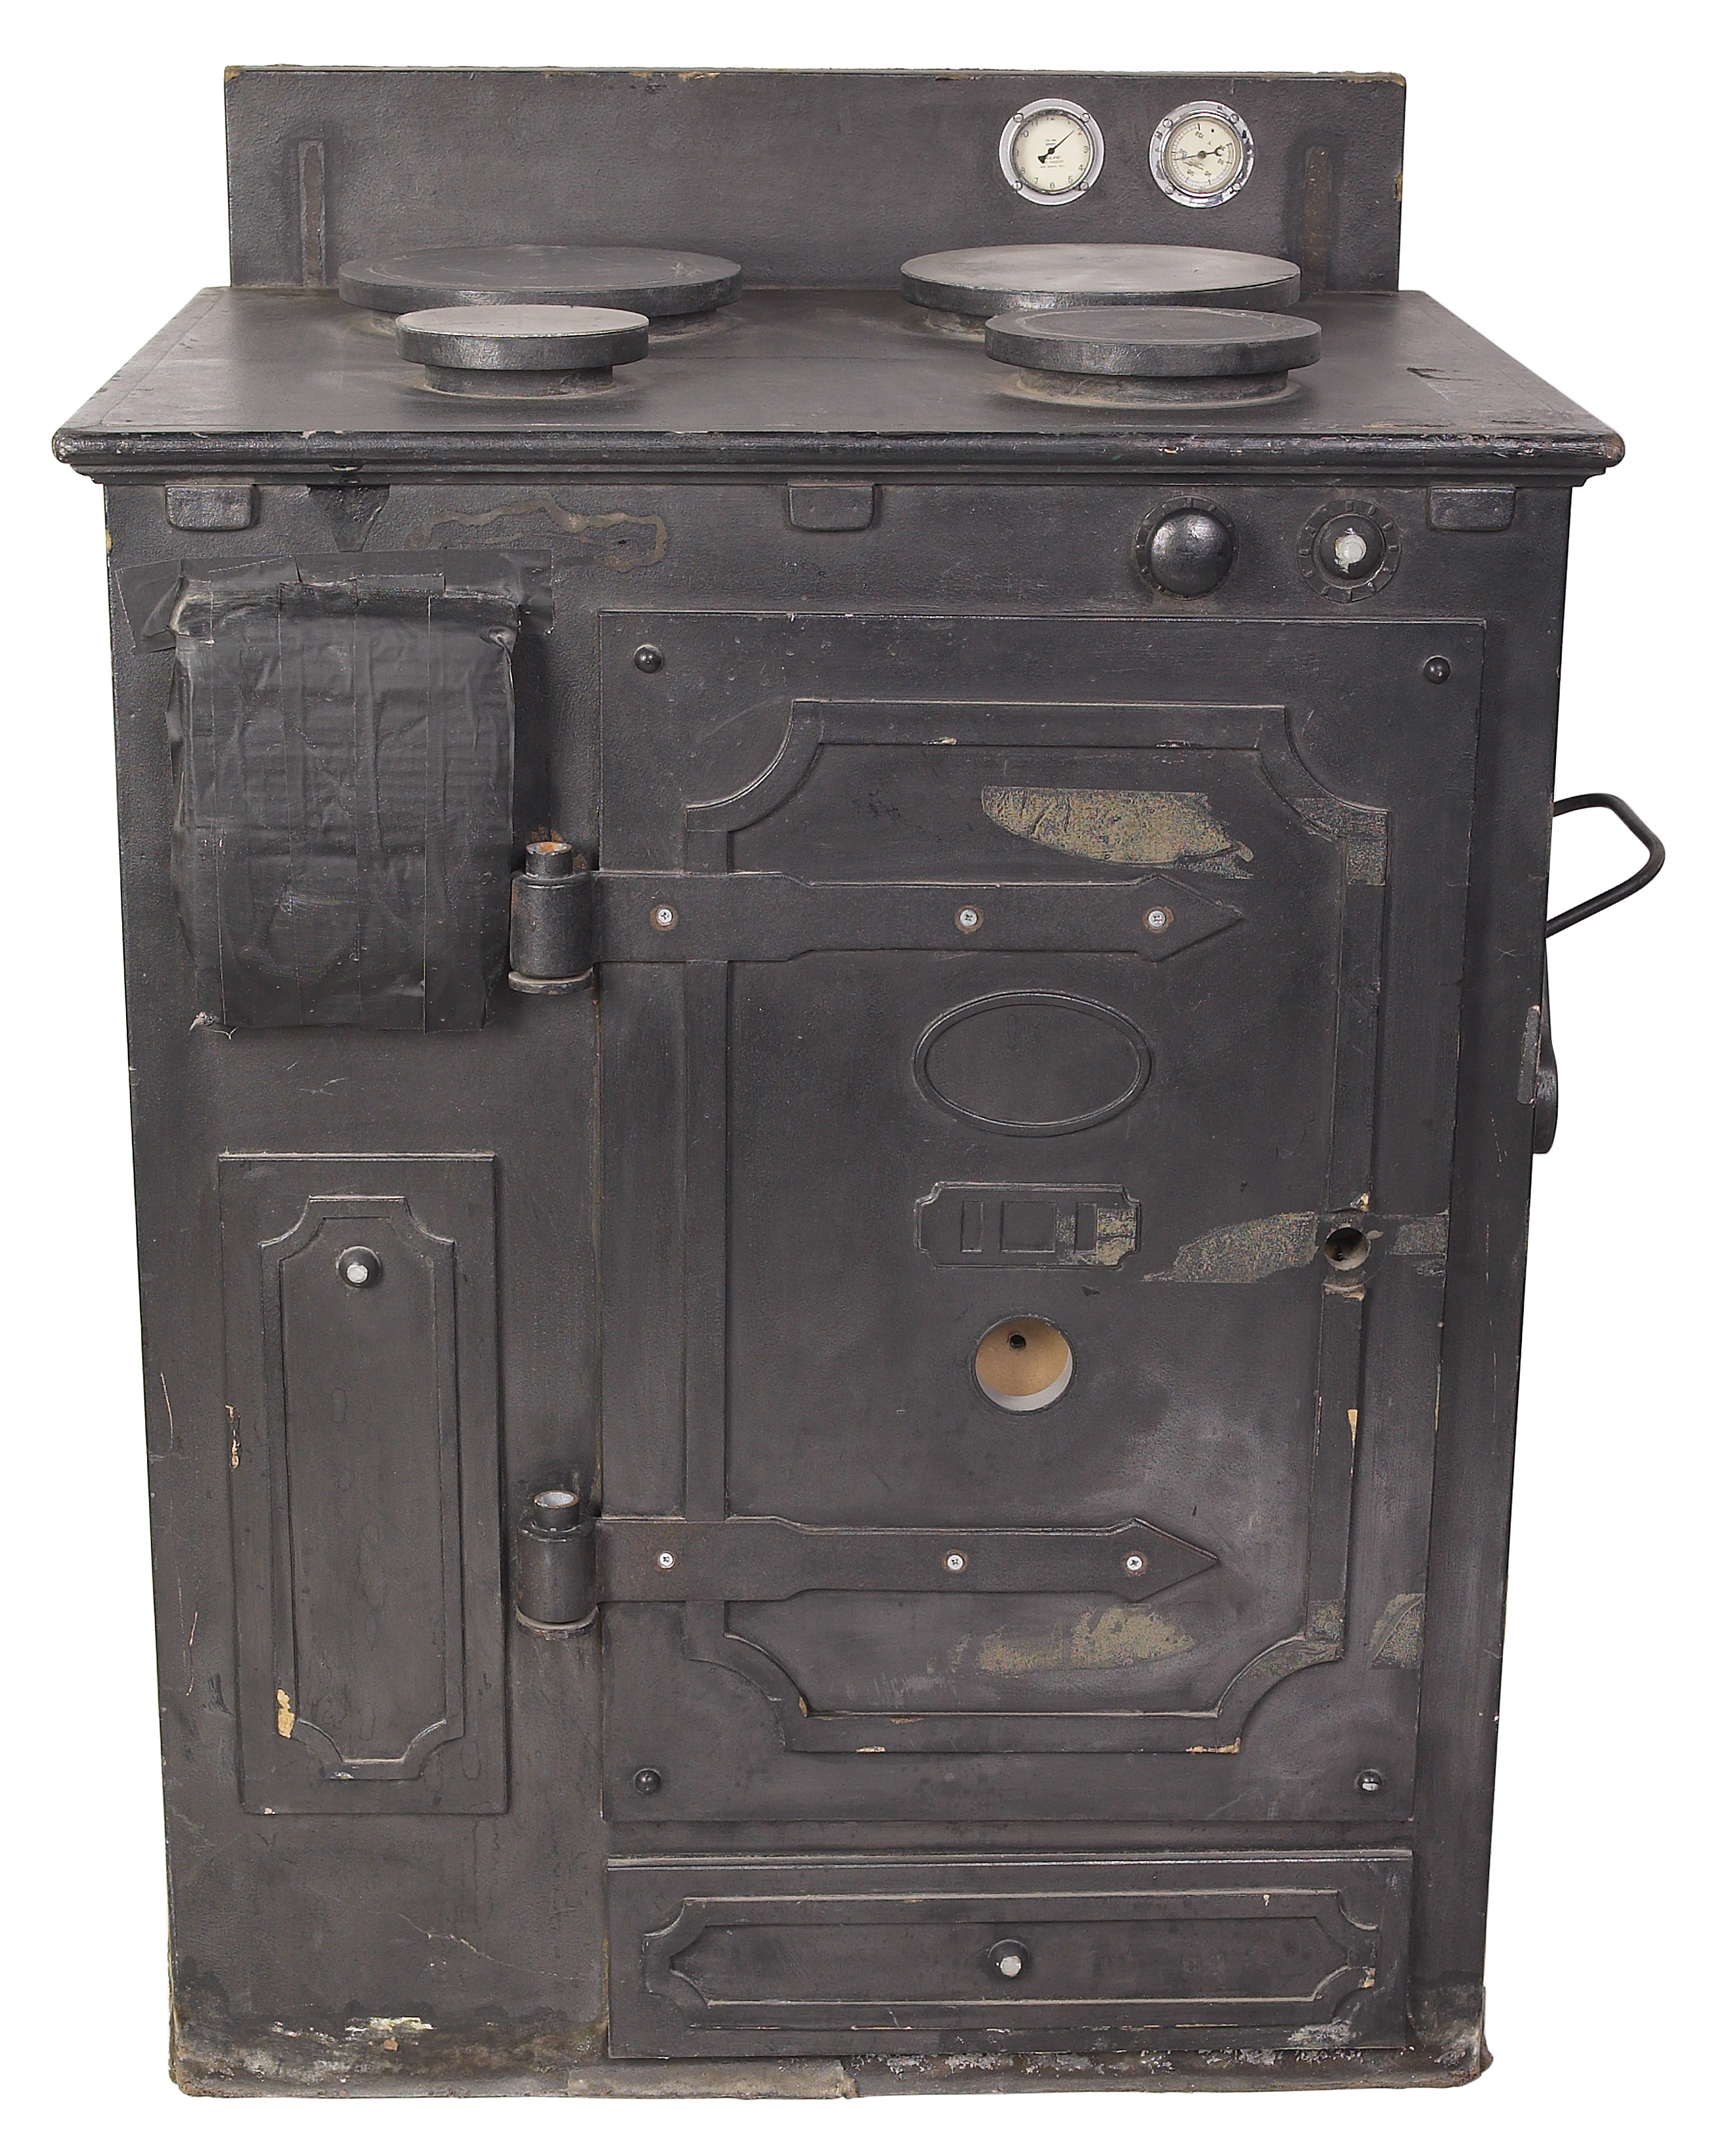 How To Identify Old Wood Stoves